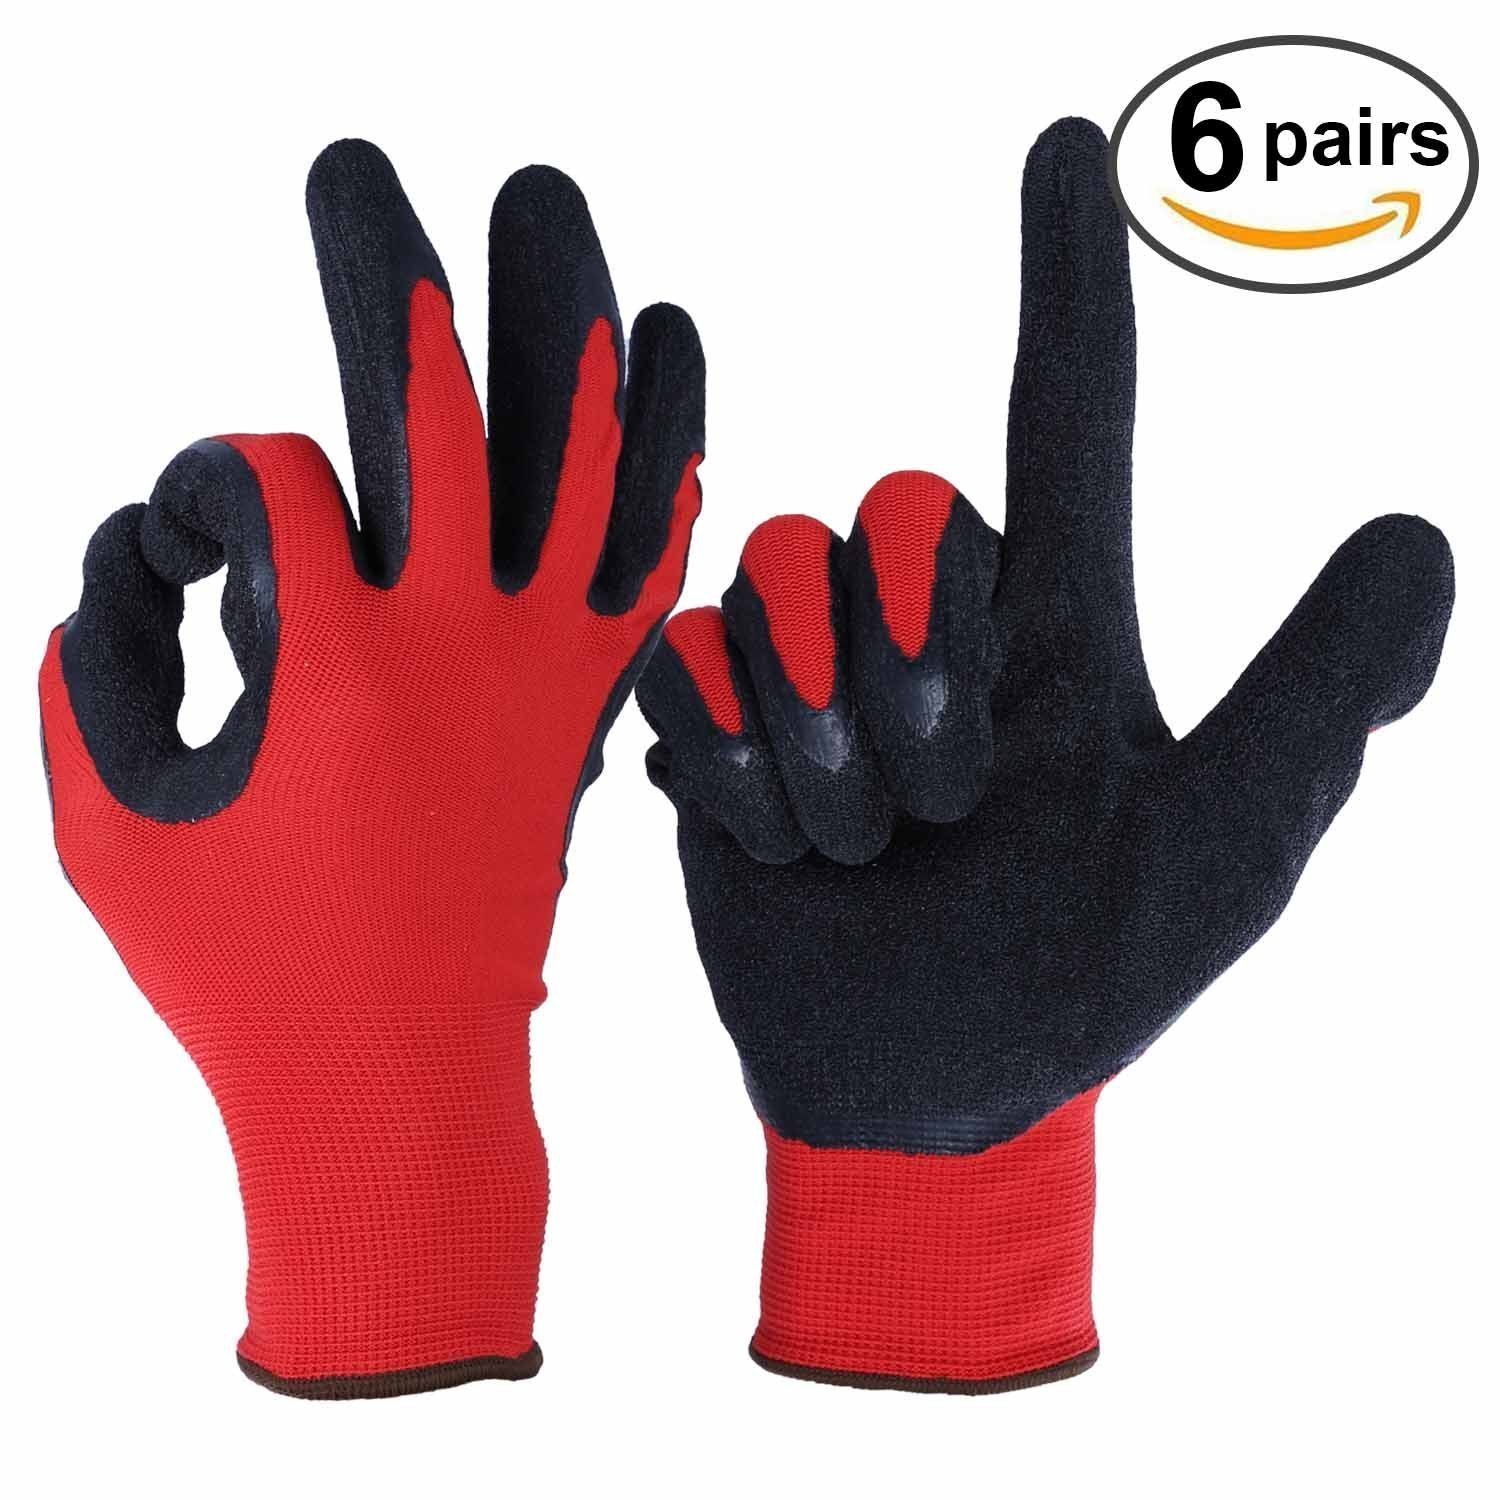 Nitrile Work Glove with Nylon Shell for Farming, Warehouse, Repairment - Snug Fit - Ultimate Grip and Light Weight for Men and Women - 6 Pairs Pack Garden Gloves (Large)